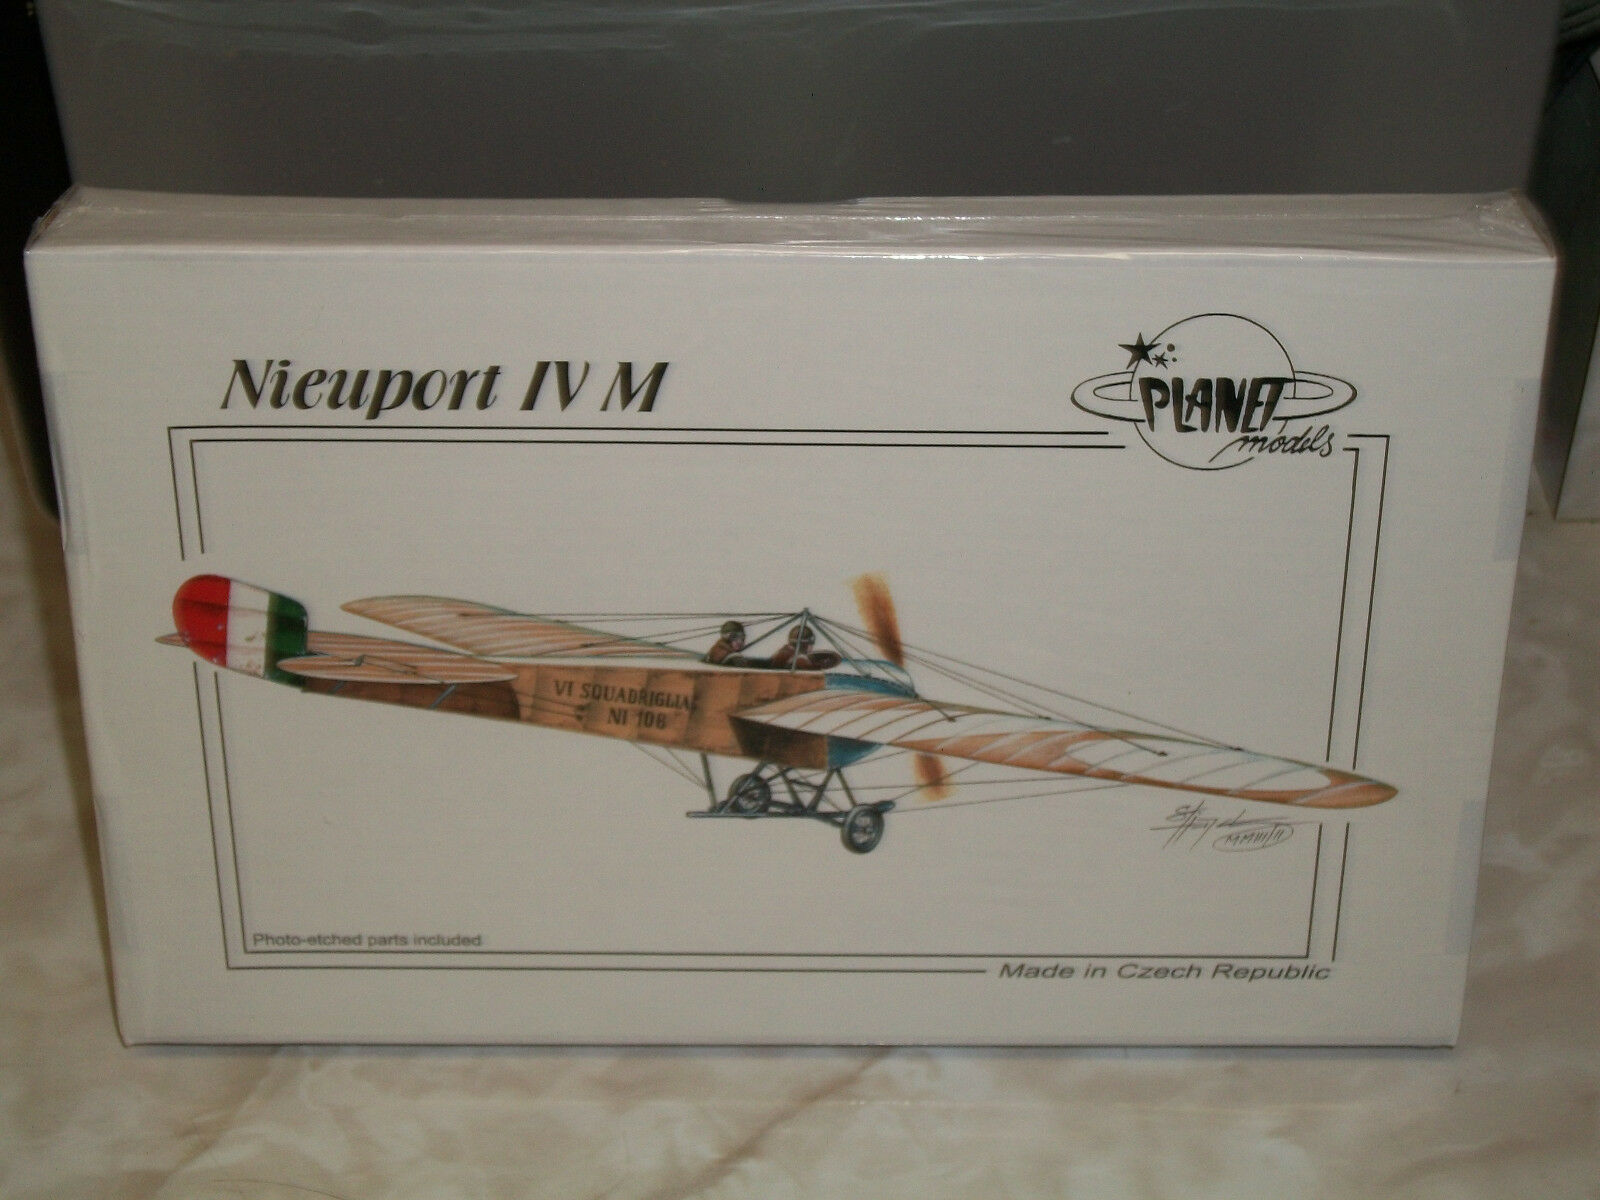 Planet Models 1 48 Scale Resin Nieuport IV M - Factory Sealed